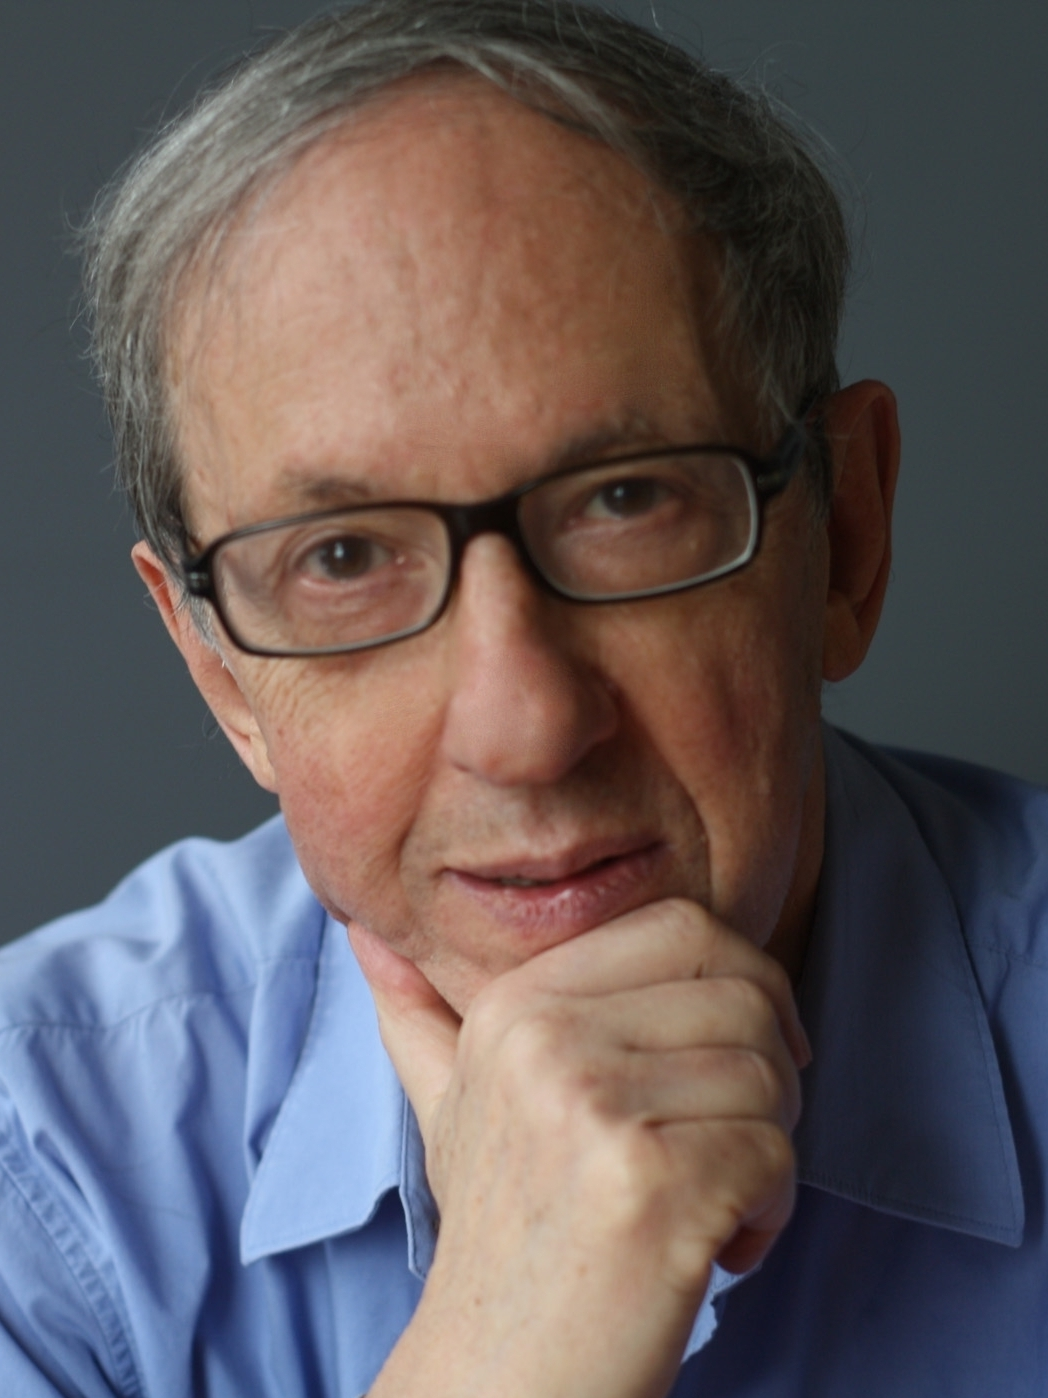 Robert Gottlieb is the author of several books. He previously served as editor of both The New Yorker and Alfred A. Knopf.